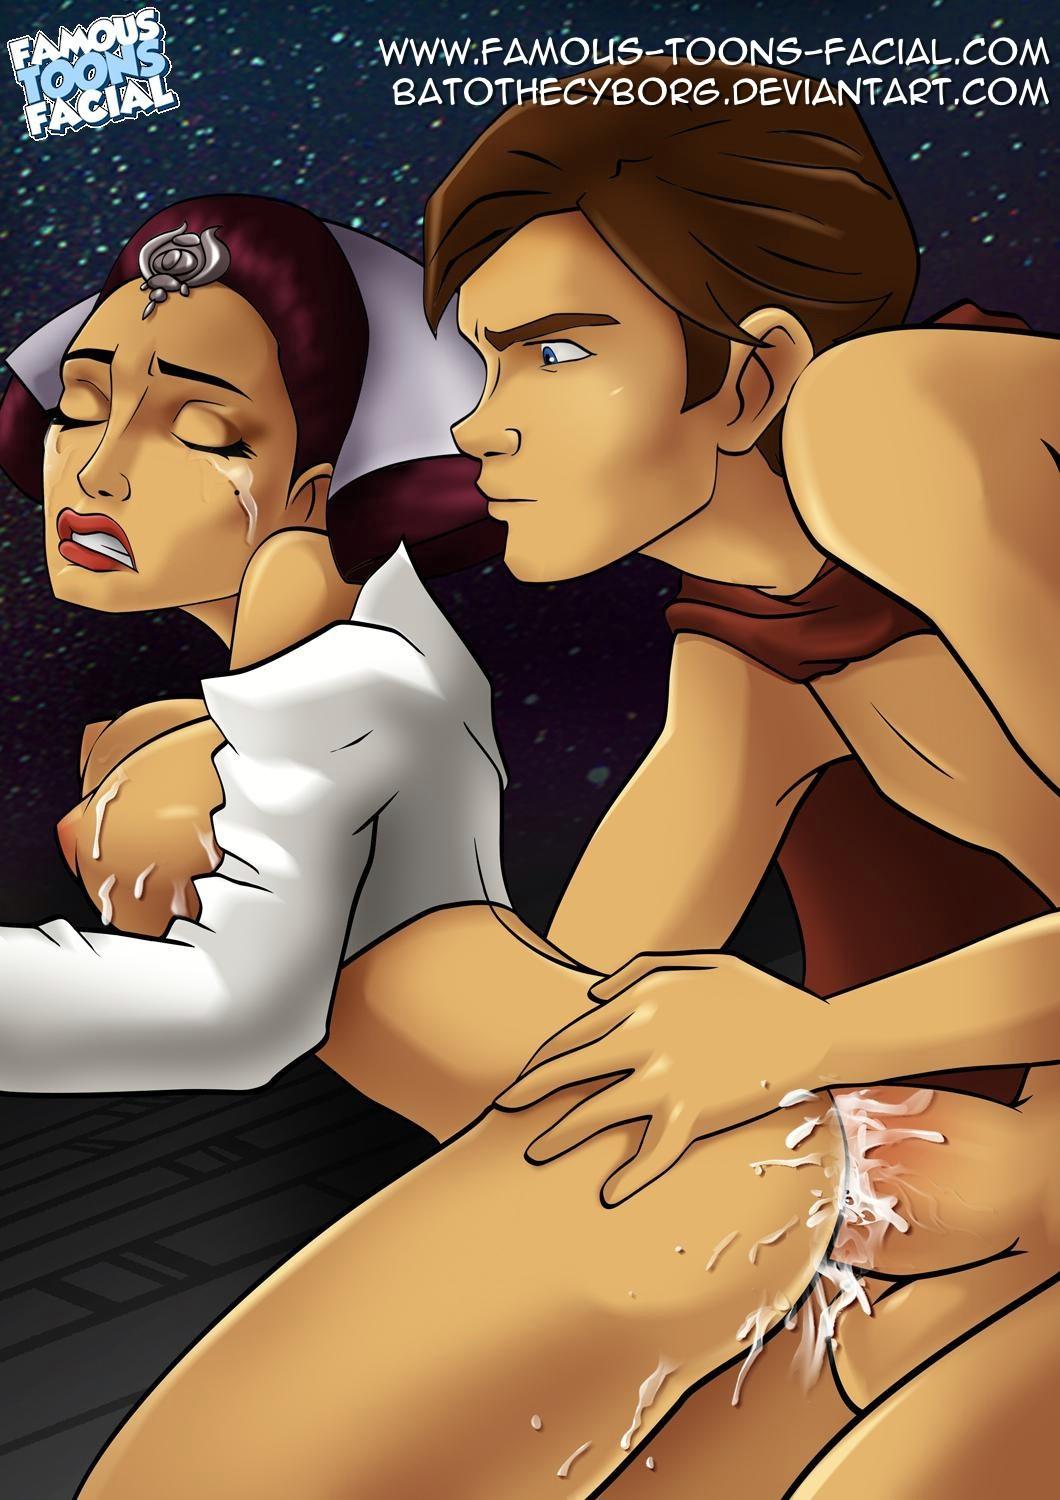 Hot naked star wars cartoon girl having  sex images